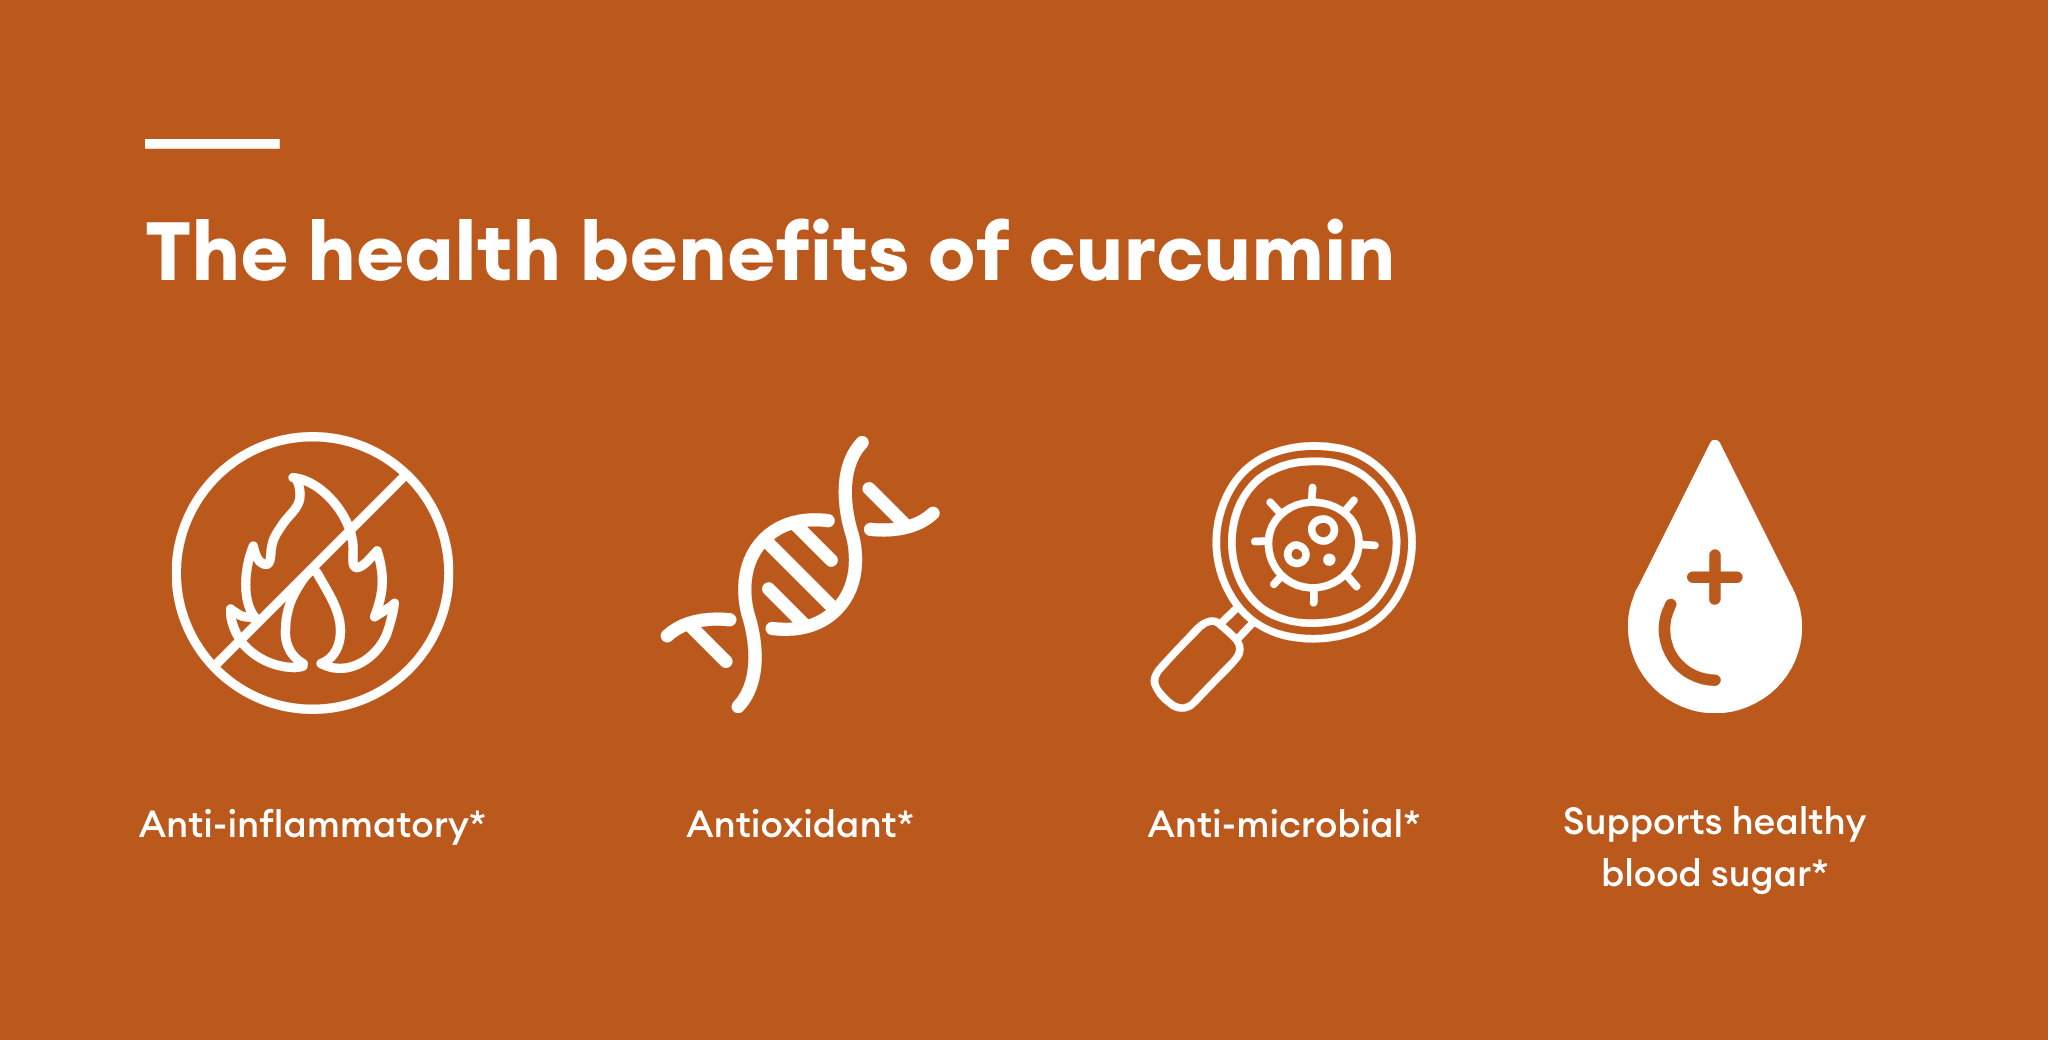 The science-backed health benefits of curcumin